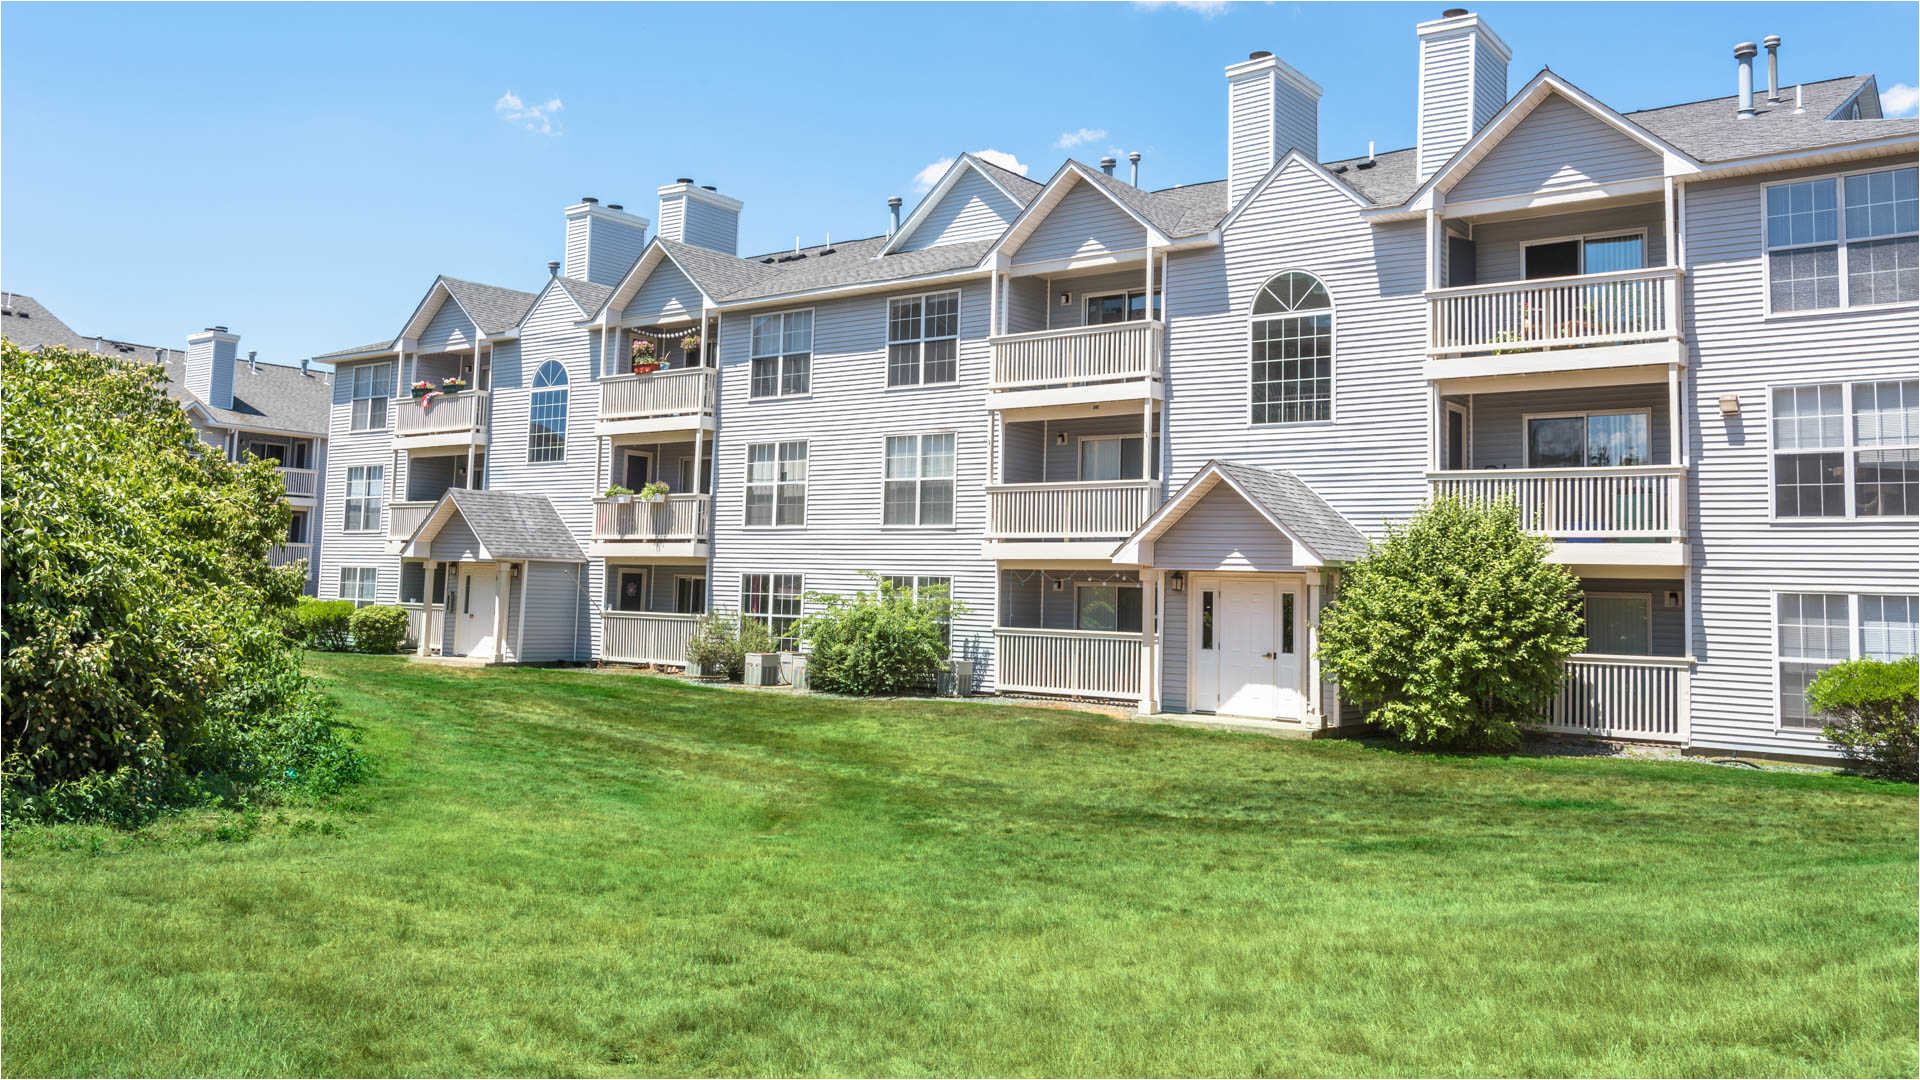 lincoln heights apartments quincy 175 centre street equityapartments com